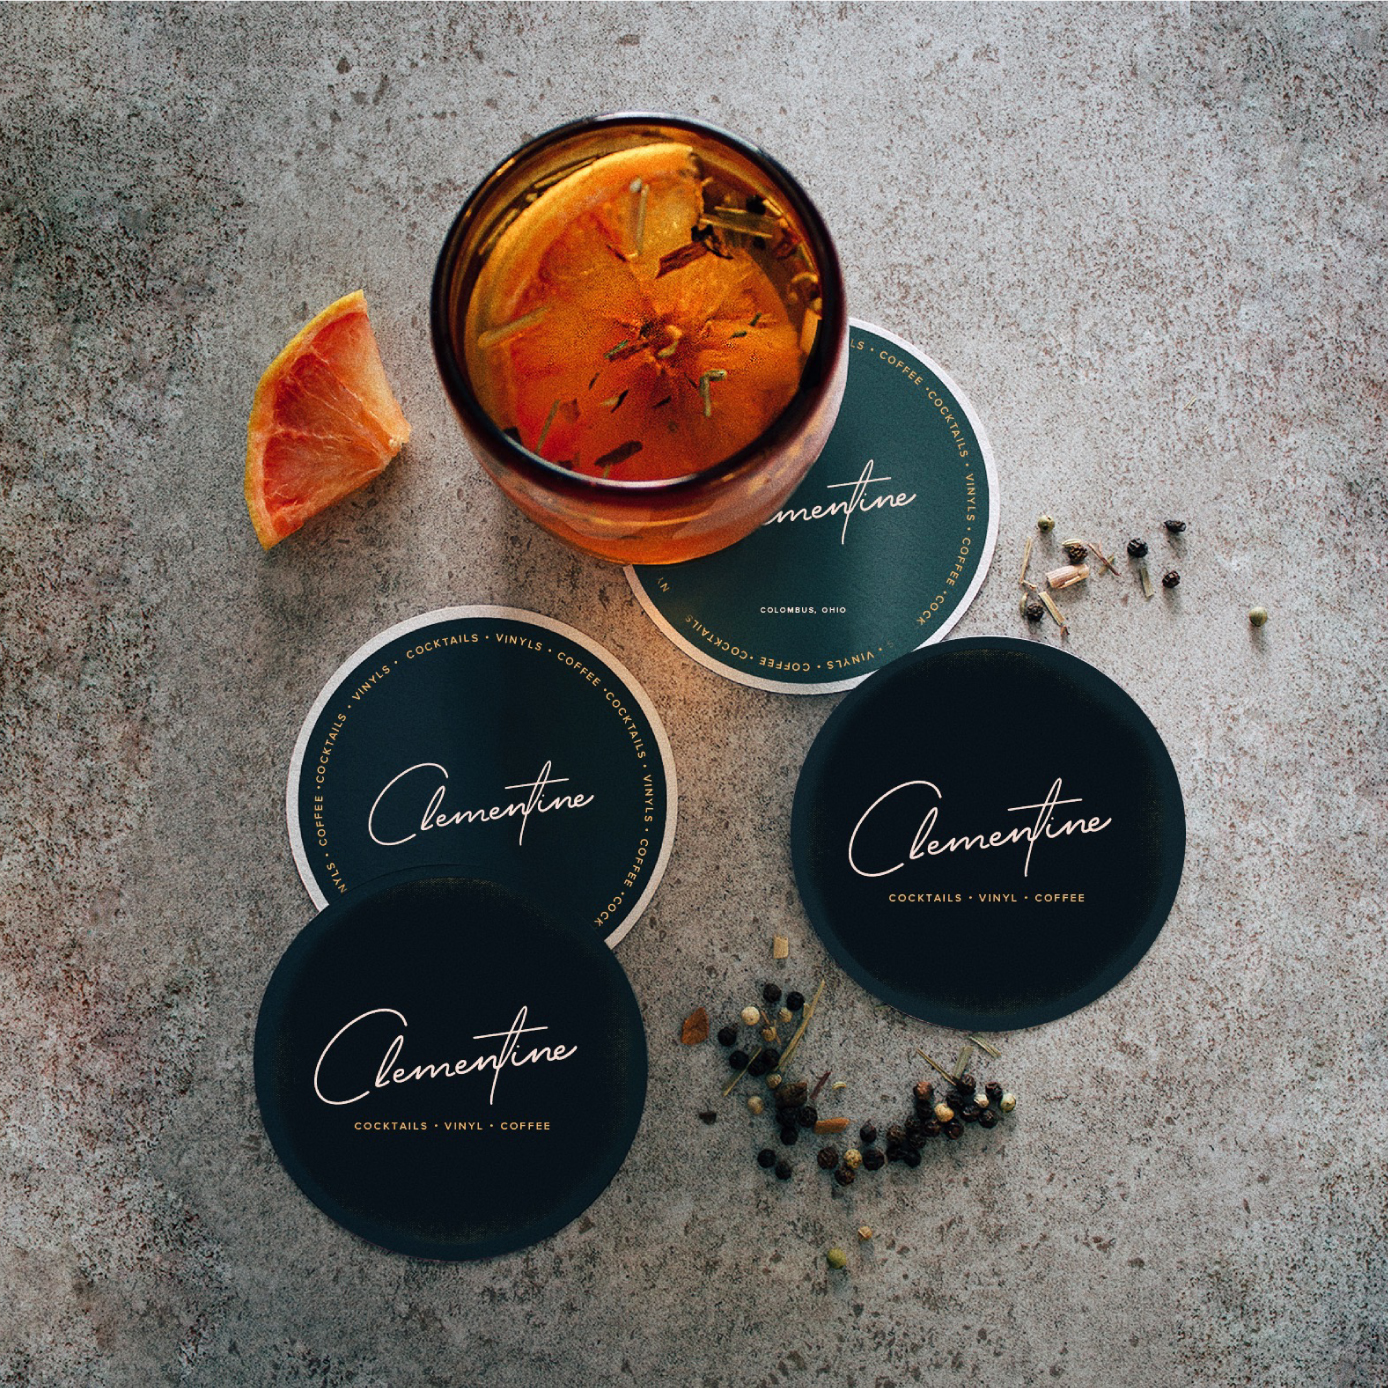 Clementine logo on Coasters near a cocktail